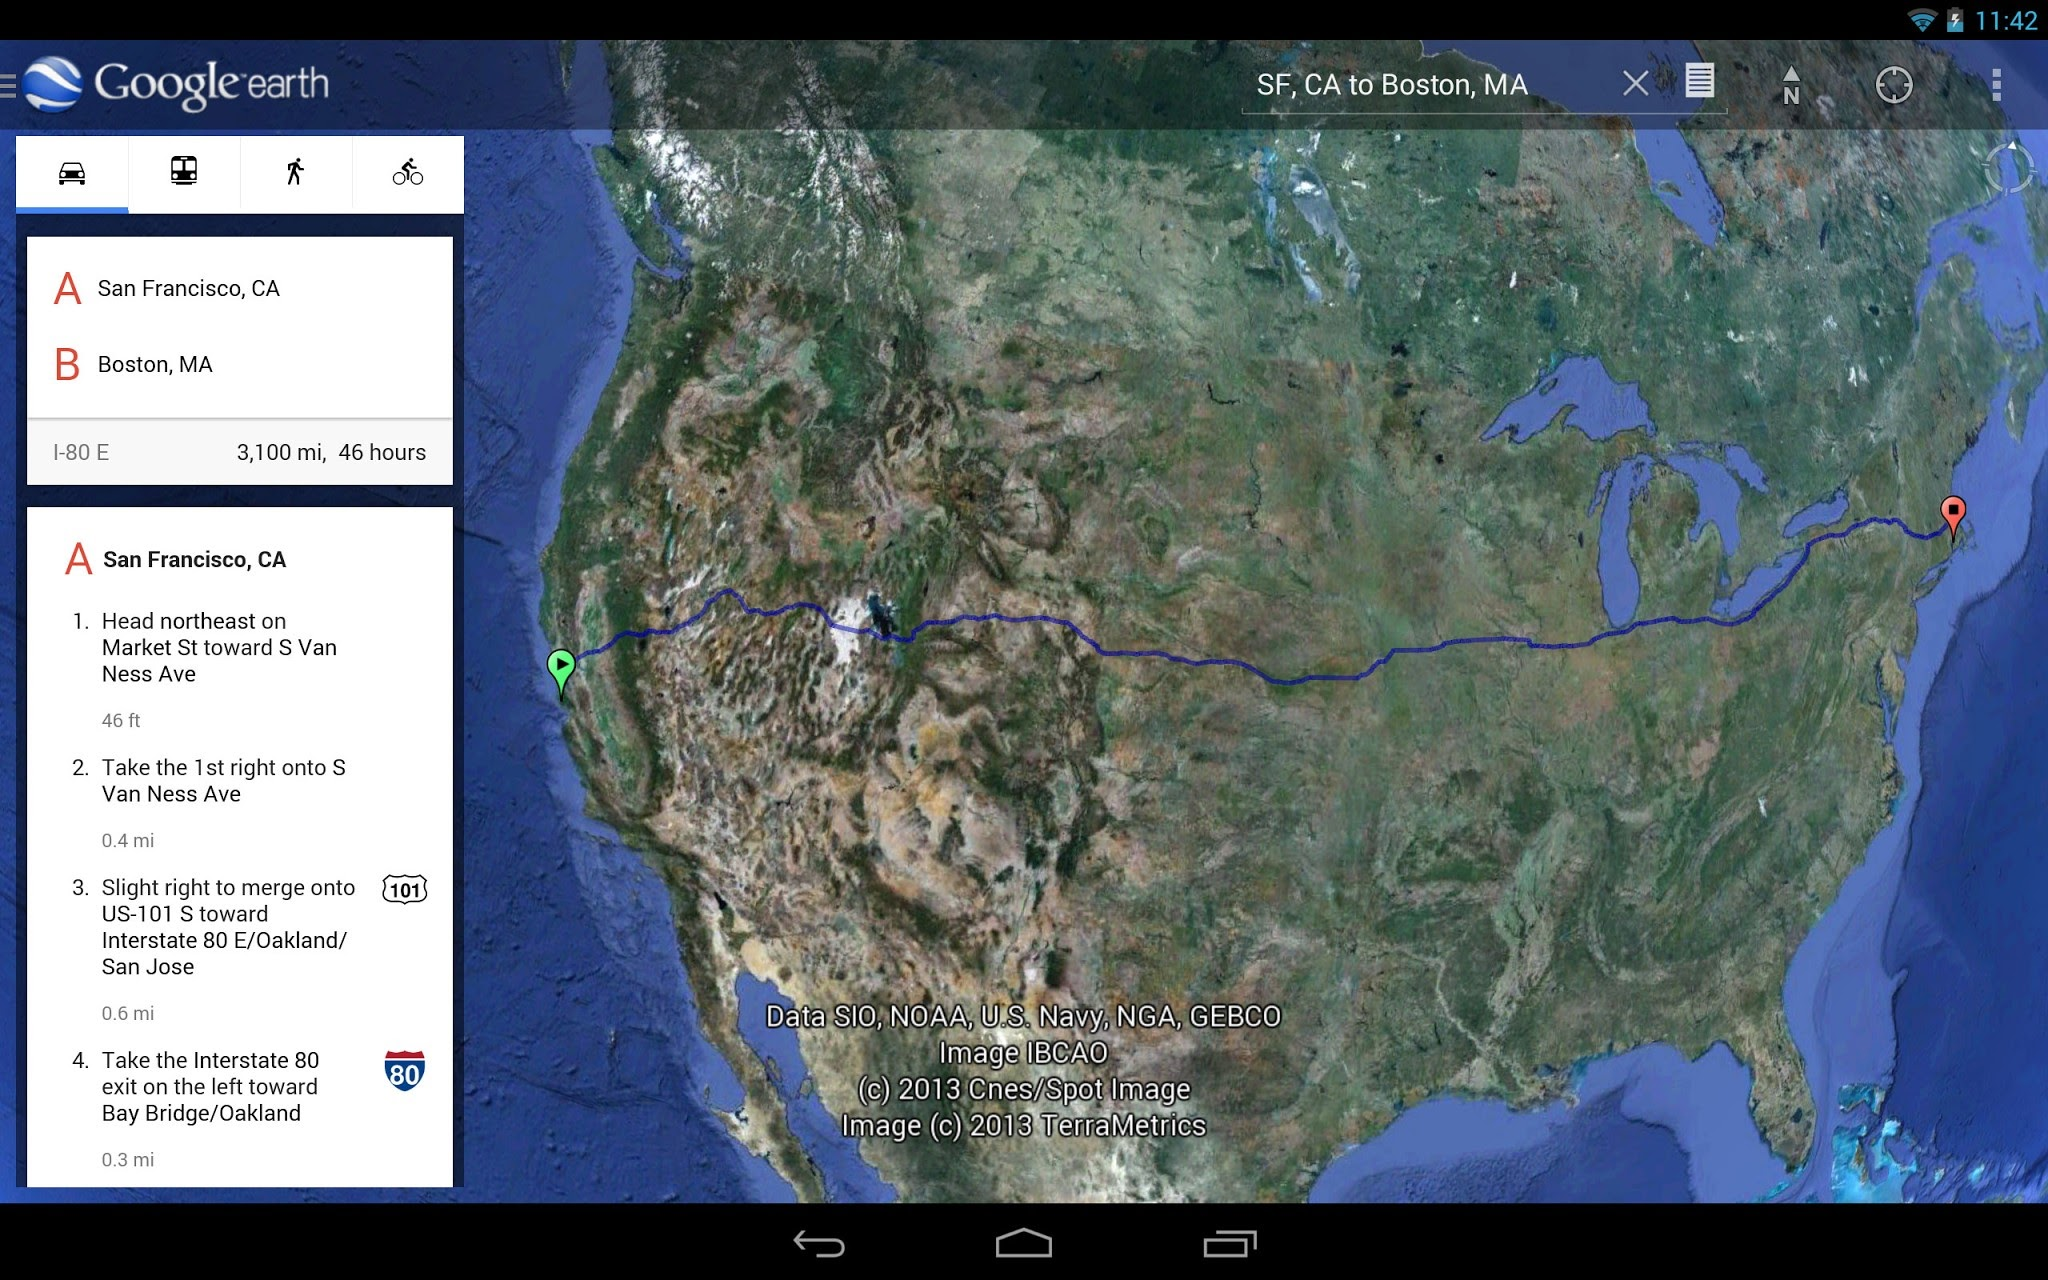 Google earth 71 now available on android earth explorers rejoice google earth 71 now available on android earth explorers rejoice hot on th gumiabroncs Images